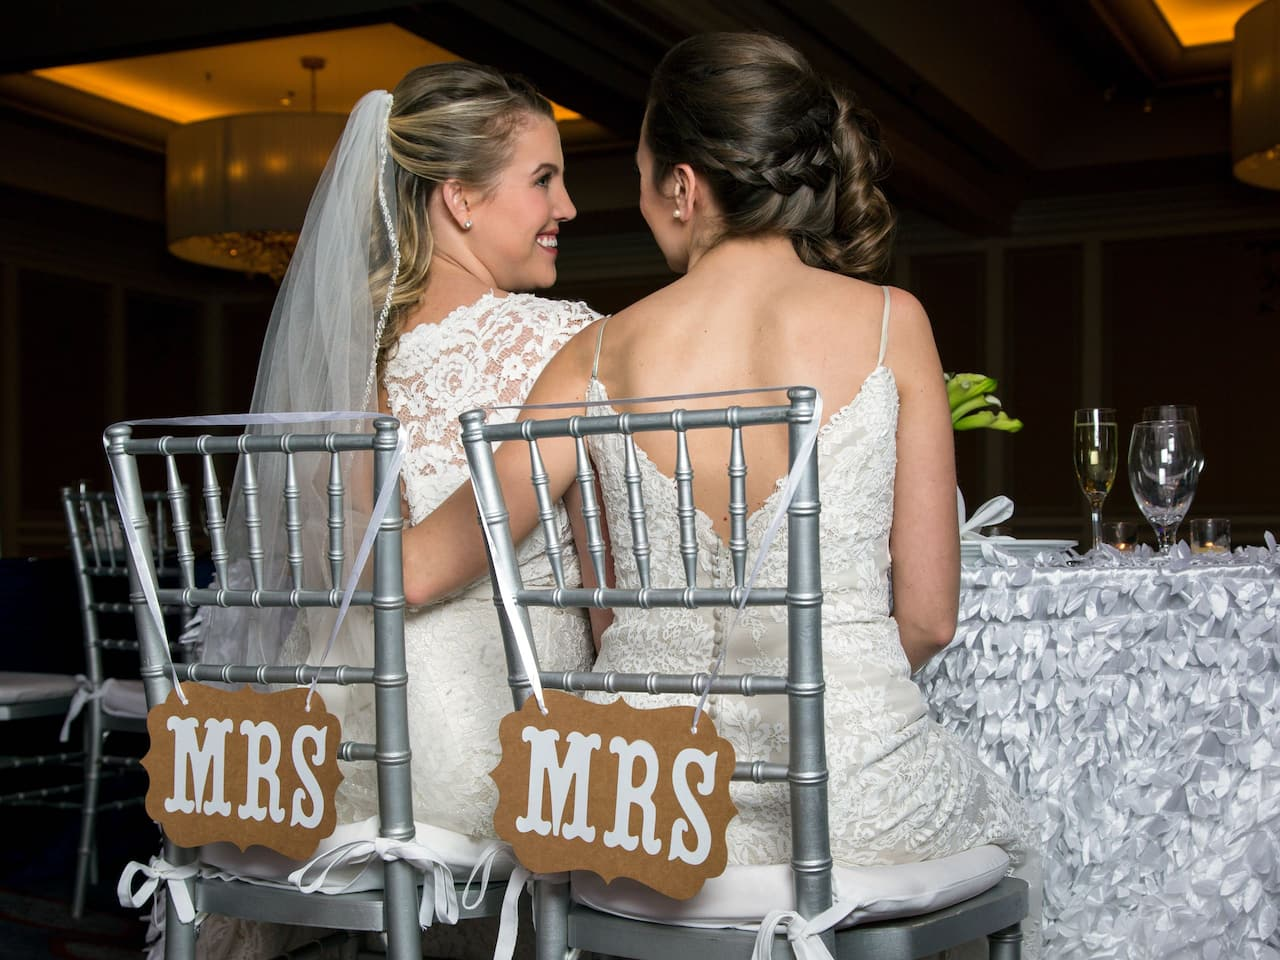 Two women in chairs with MRS signs at wedding